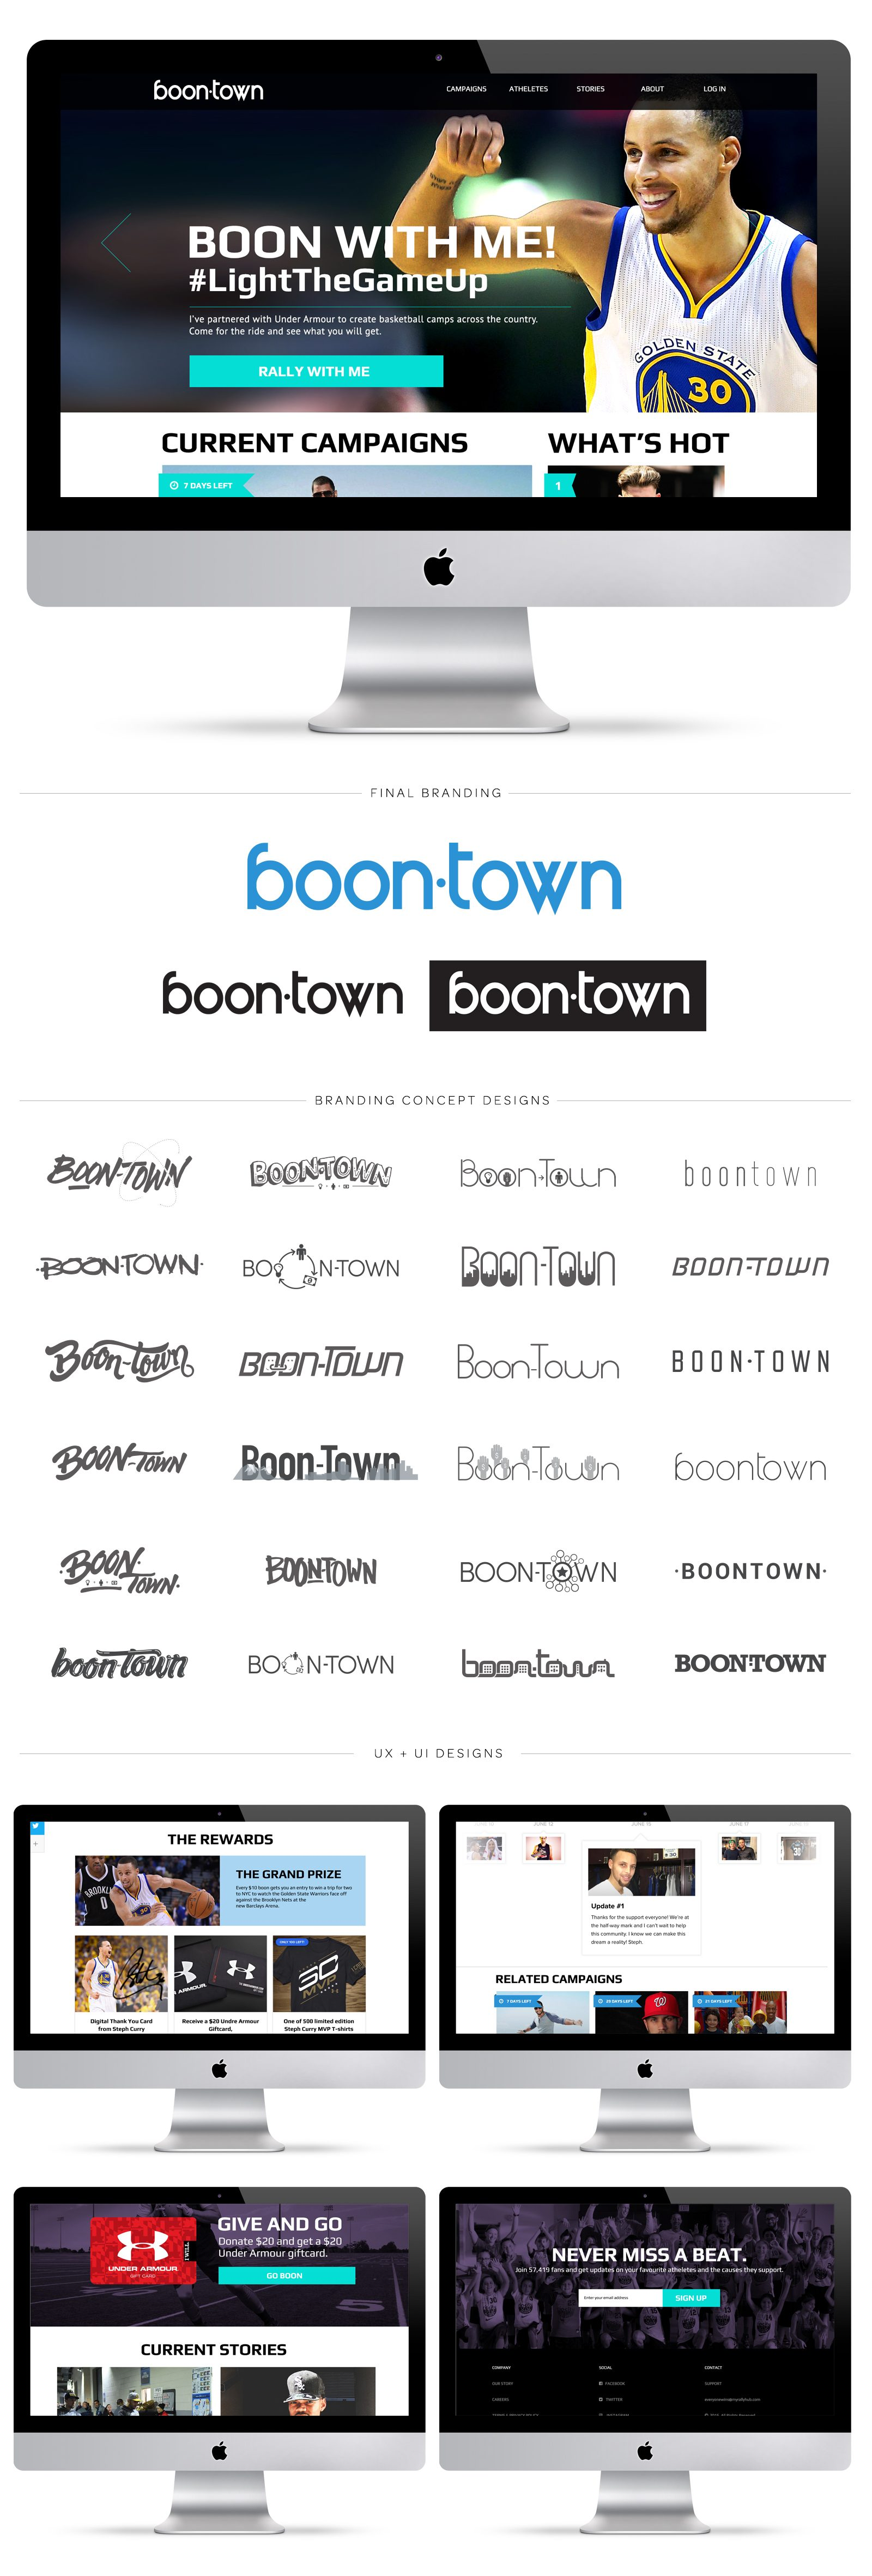 boontown_site_creative